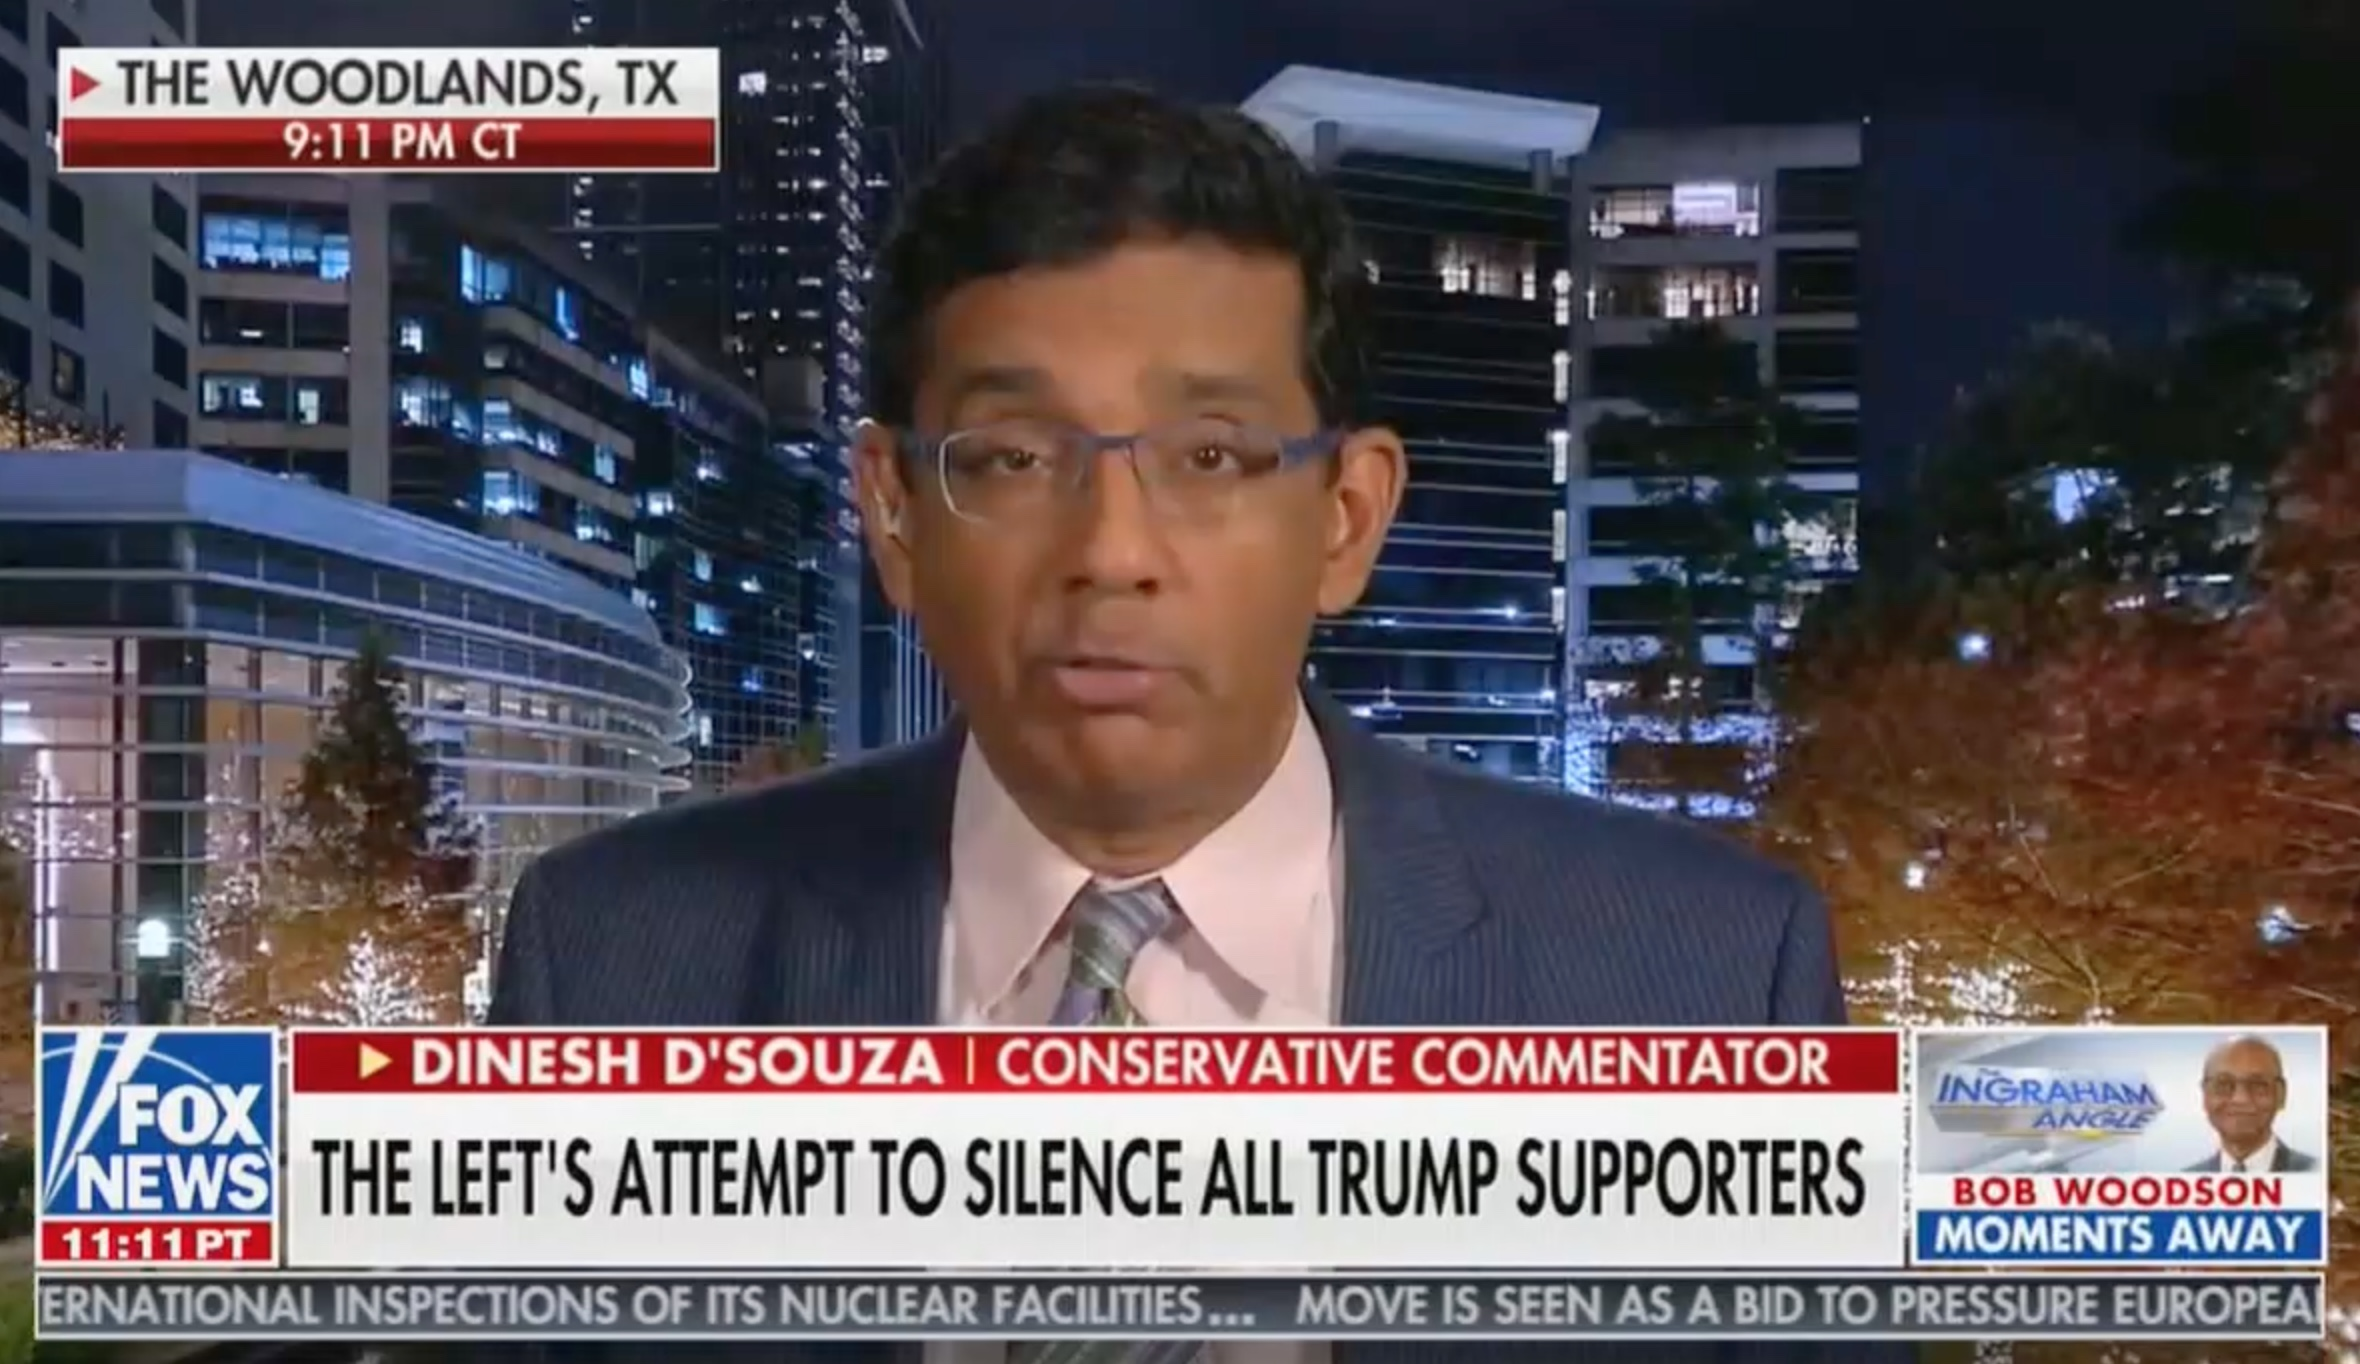 Dinesh D'Souza Gets Scrubbed From the National Review Masthead